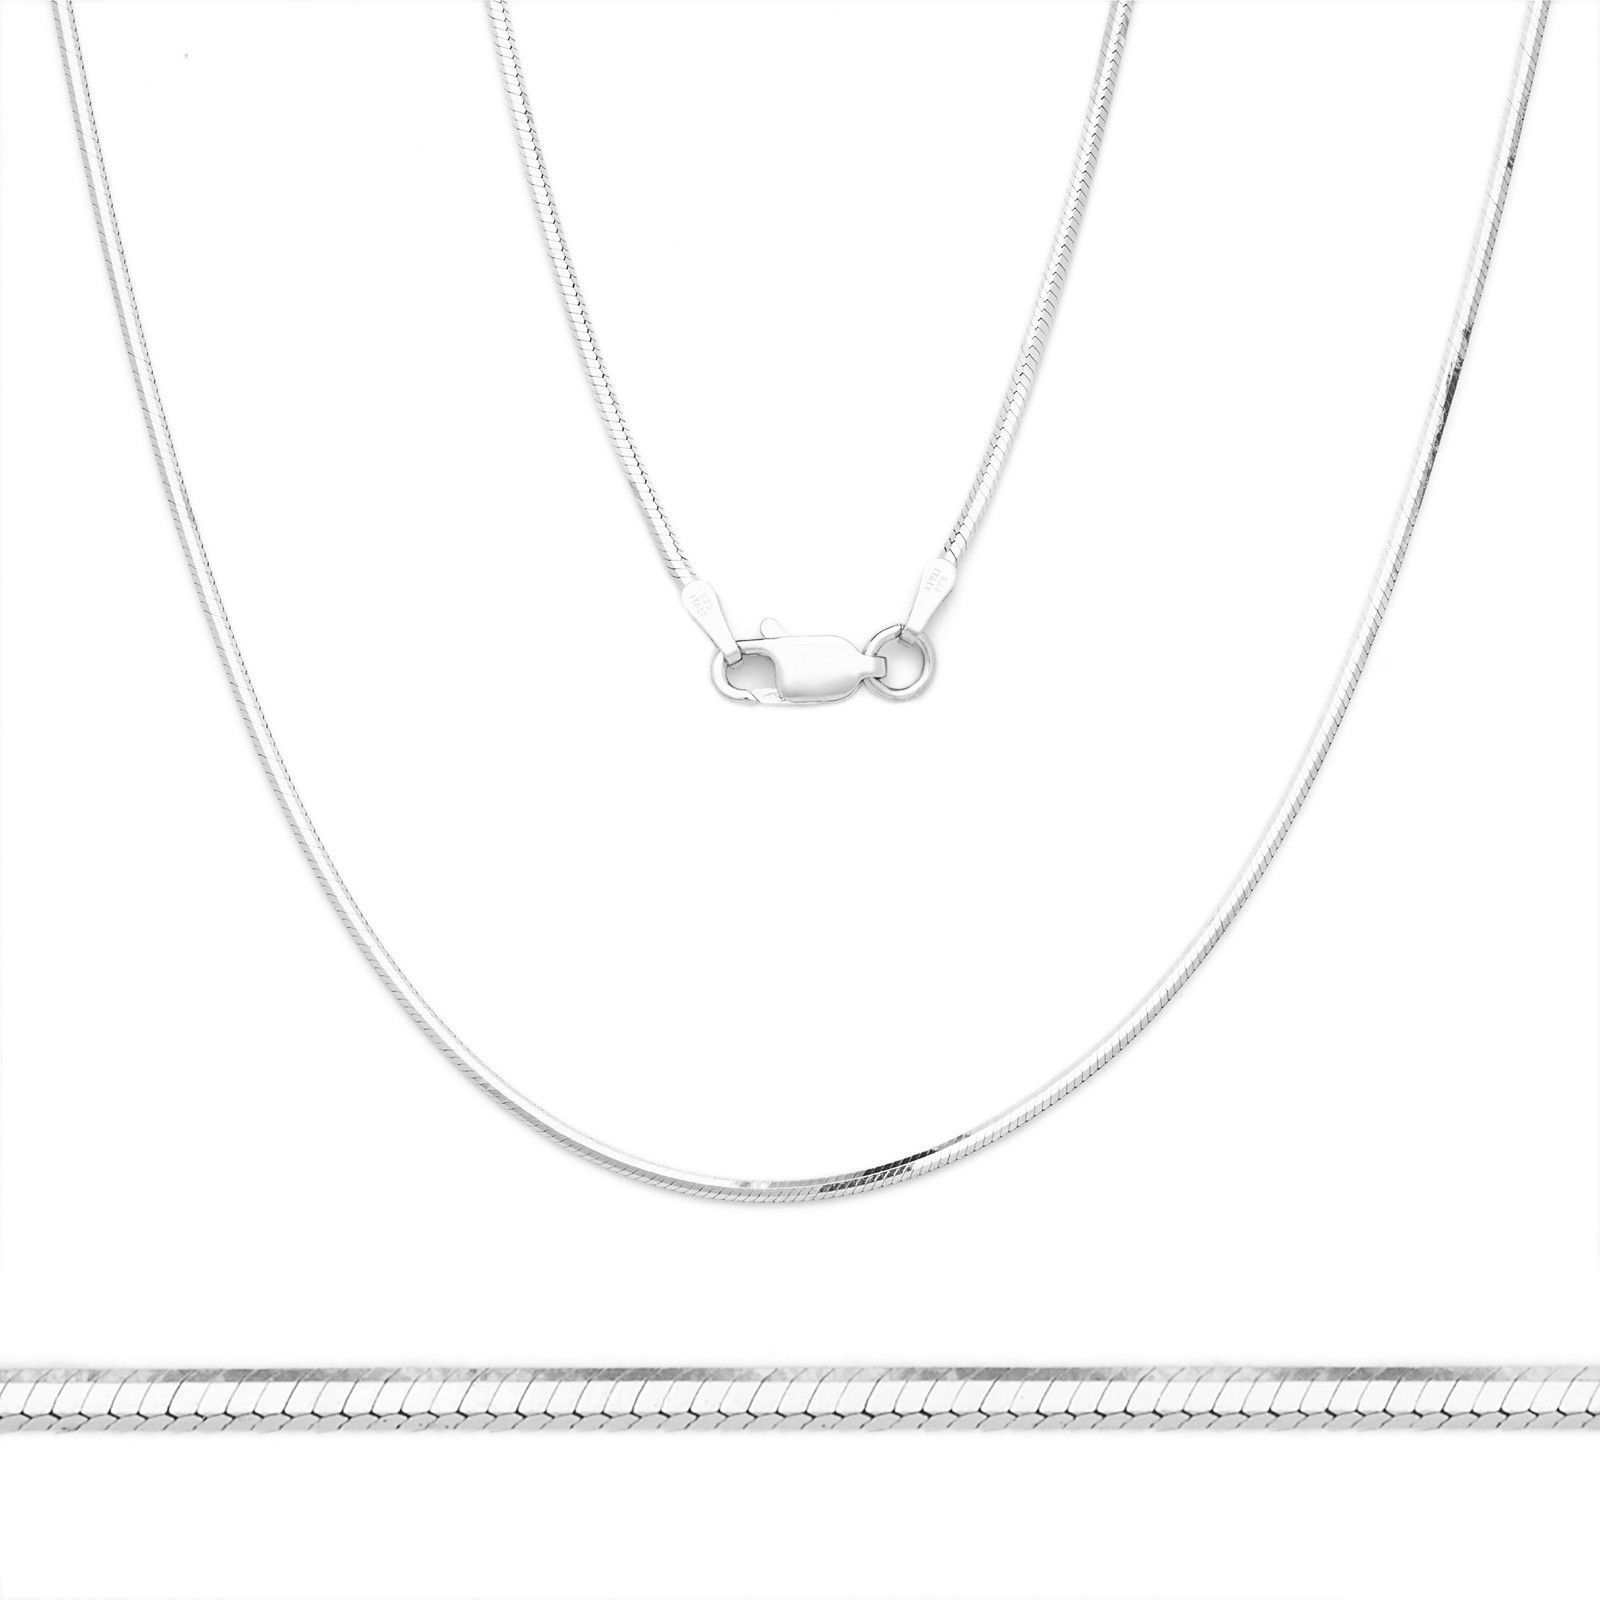 Unique Stylish 14K WG 925 Silver Snake Link Italian Chain Necklace 1.2mm